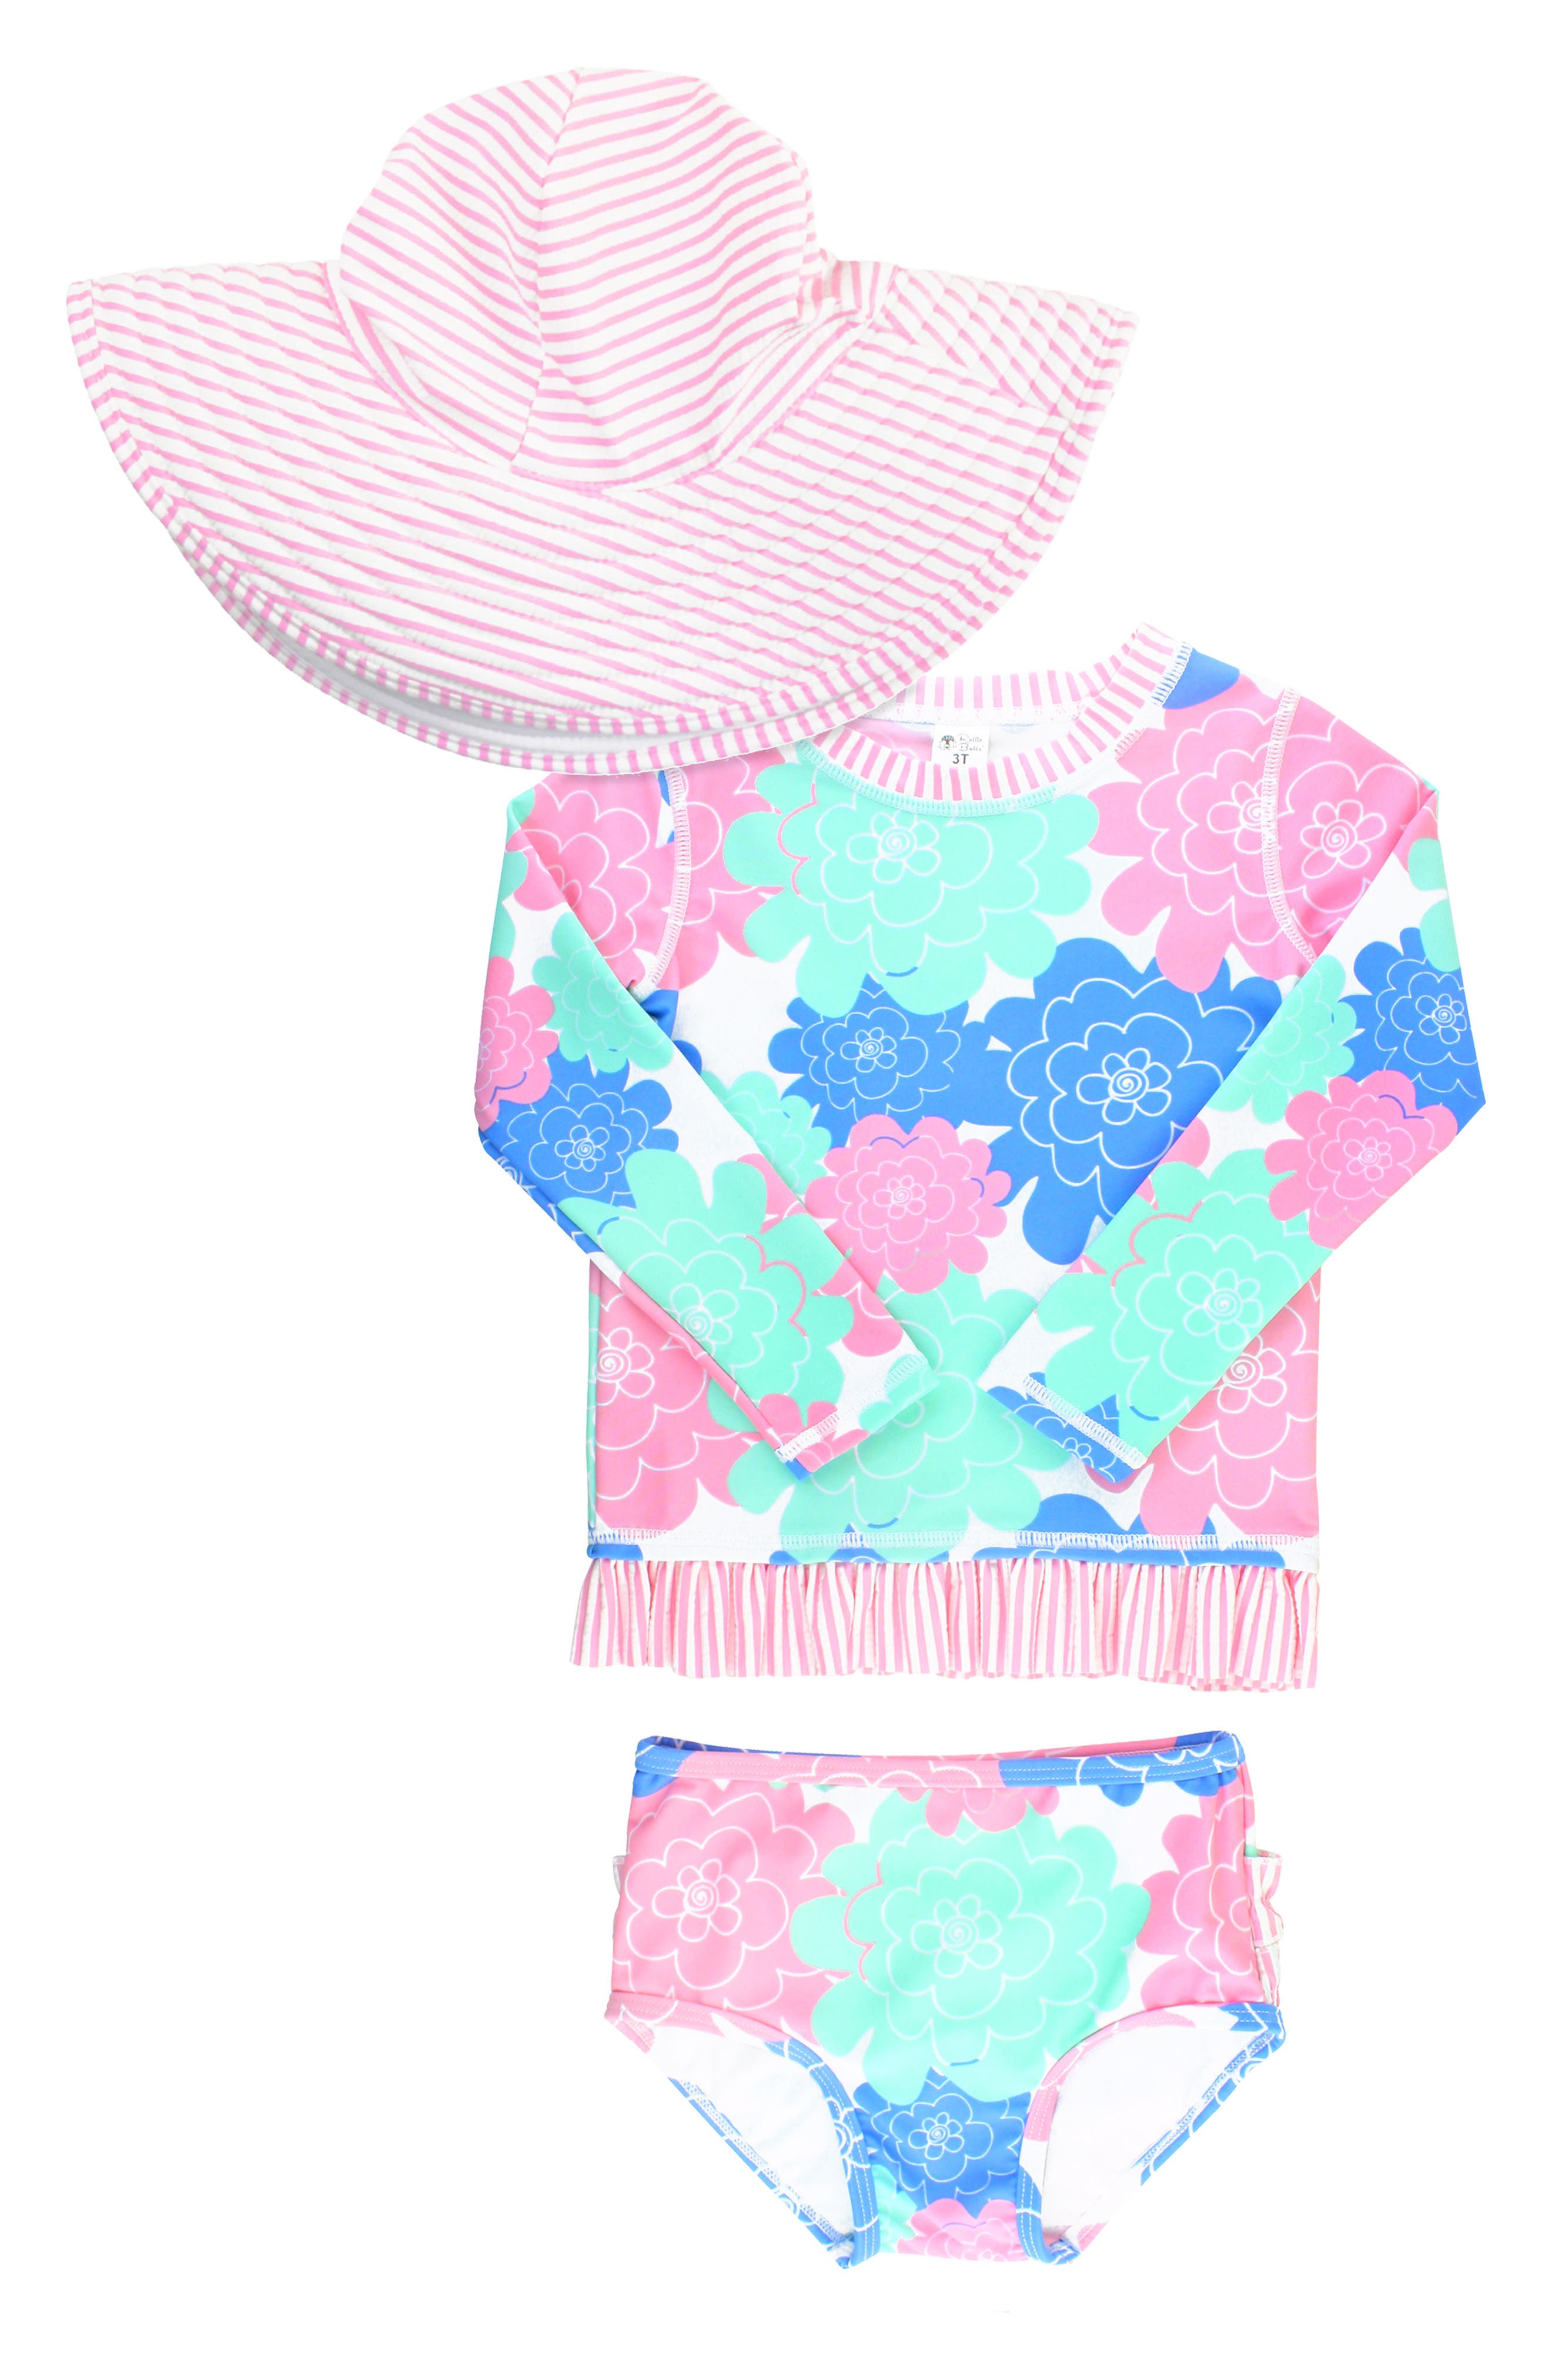 Pretty flowers pattern a swimsuit trimmed in seersucker ruffles and featuring a long-sleeve rashguard and sweet floppy hat for protecting baby\\\'s delicate skin. Style Name: Rufflebutts Petals Two-Piece Rashguard Swimsuit & Hat Set (Baby). Style Number: 5852648. Available in stores.